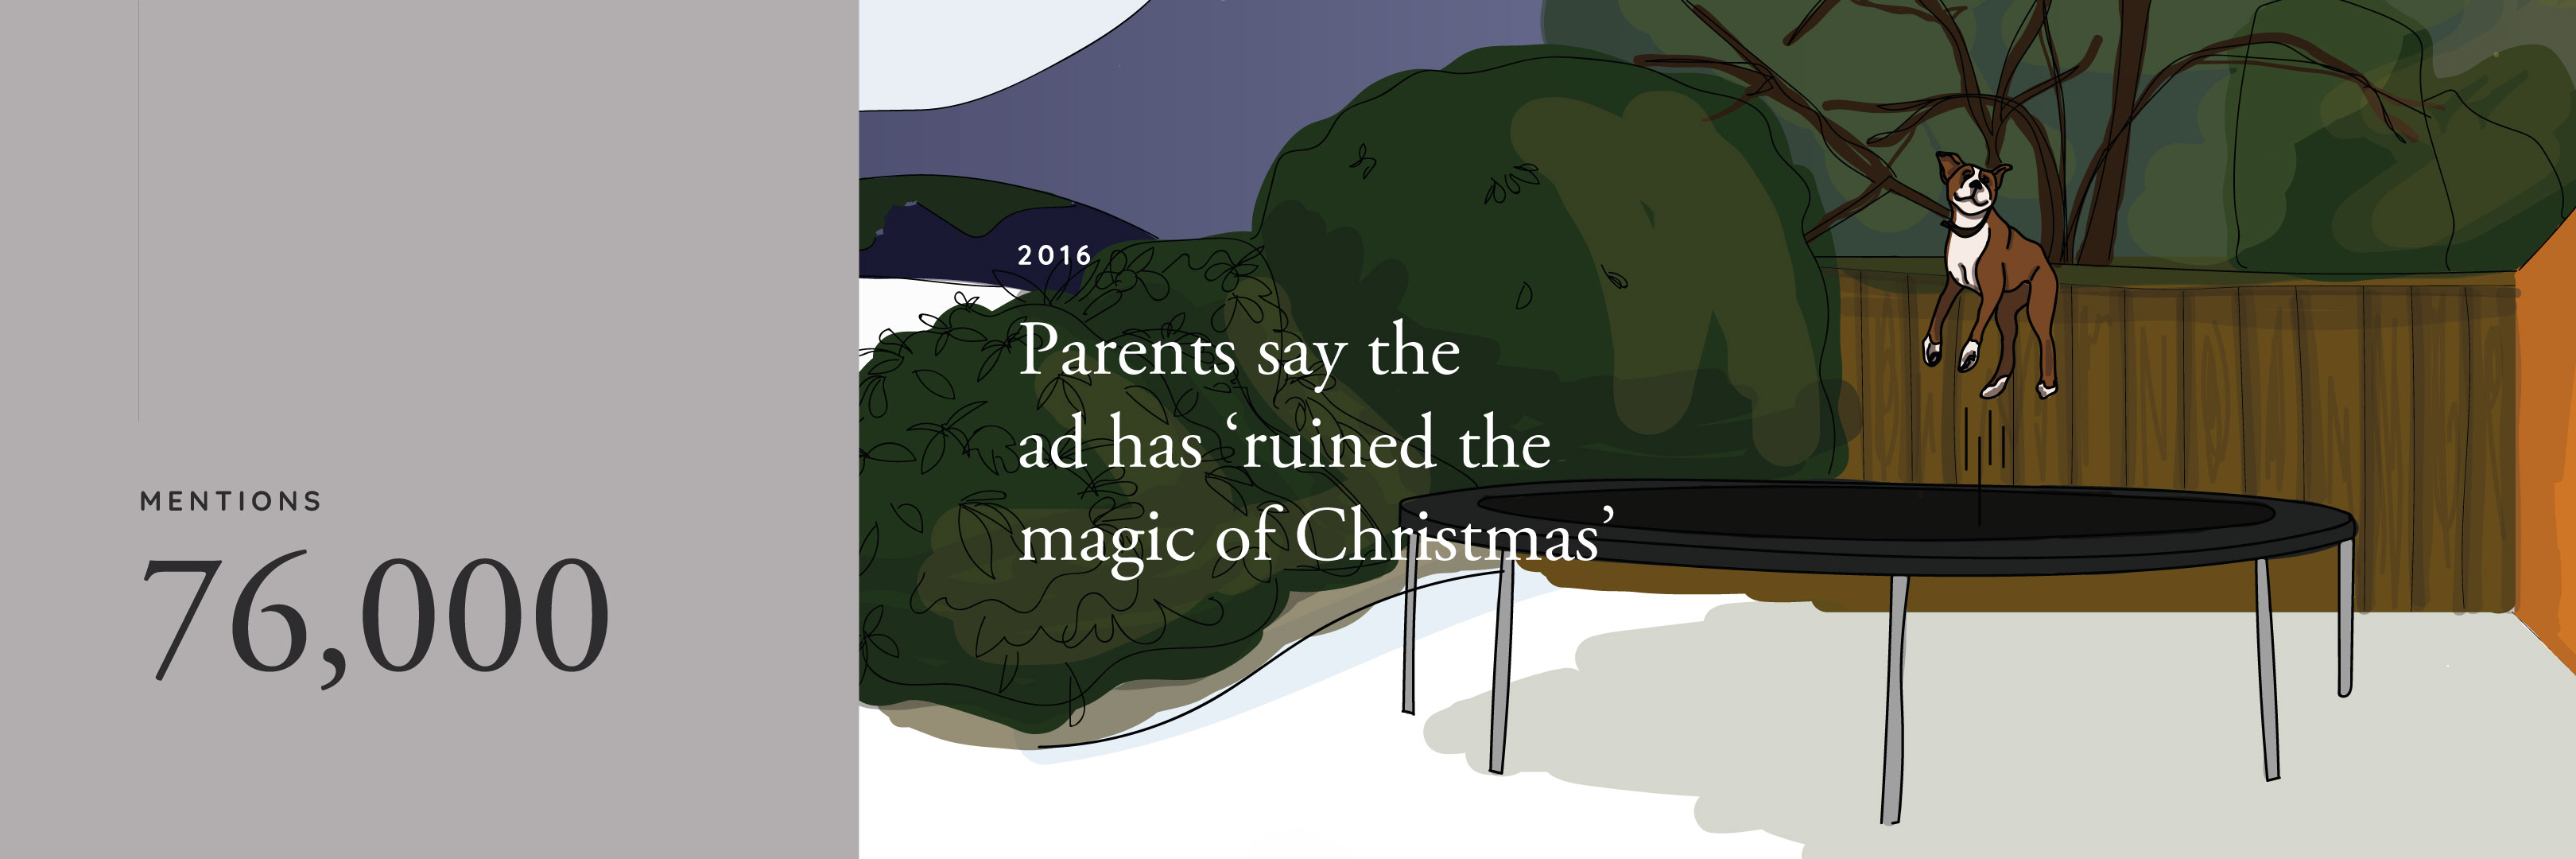 Parents say the ad has 'ruined the magic of Christmas'